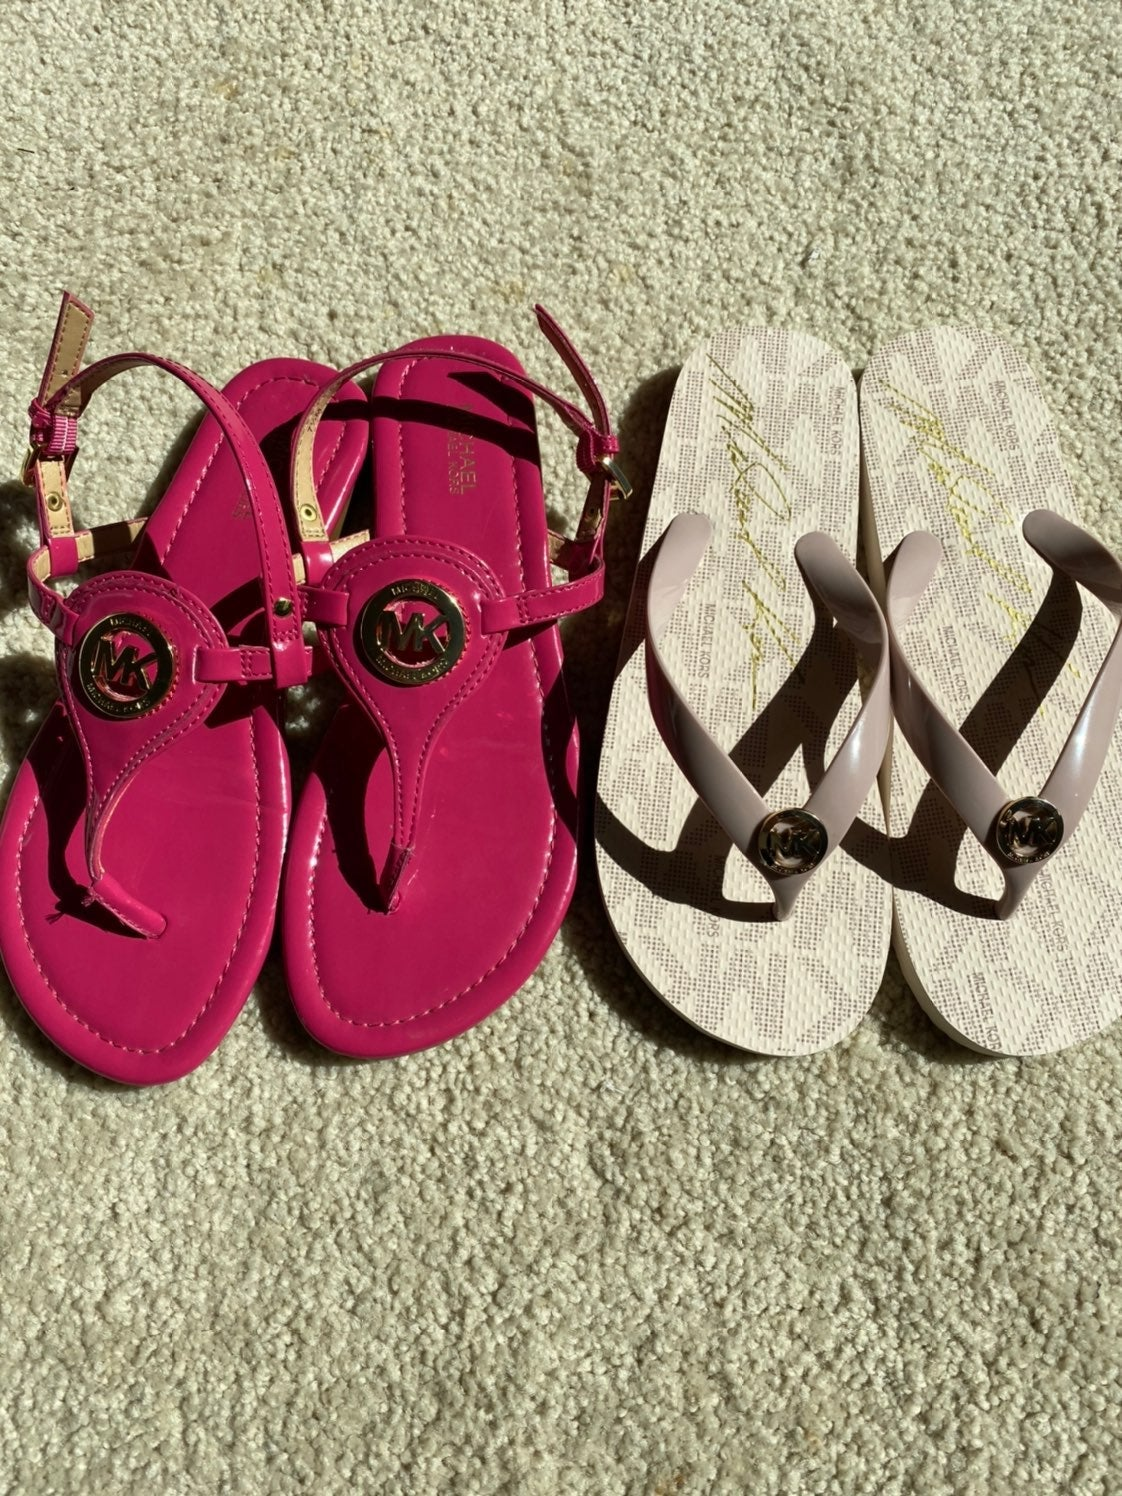 Michael Kors Sandals and Slippers bundle